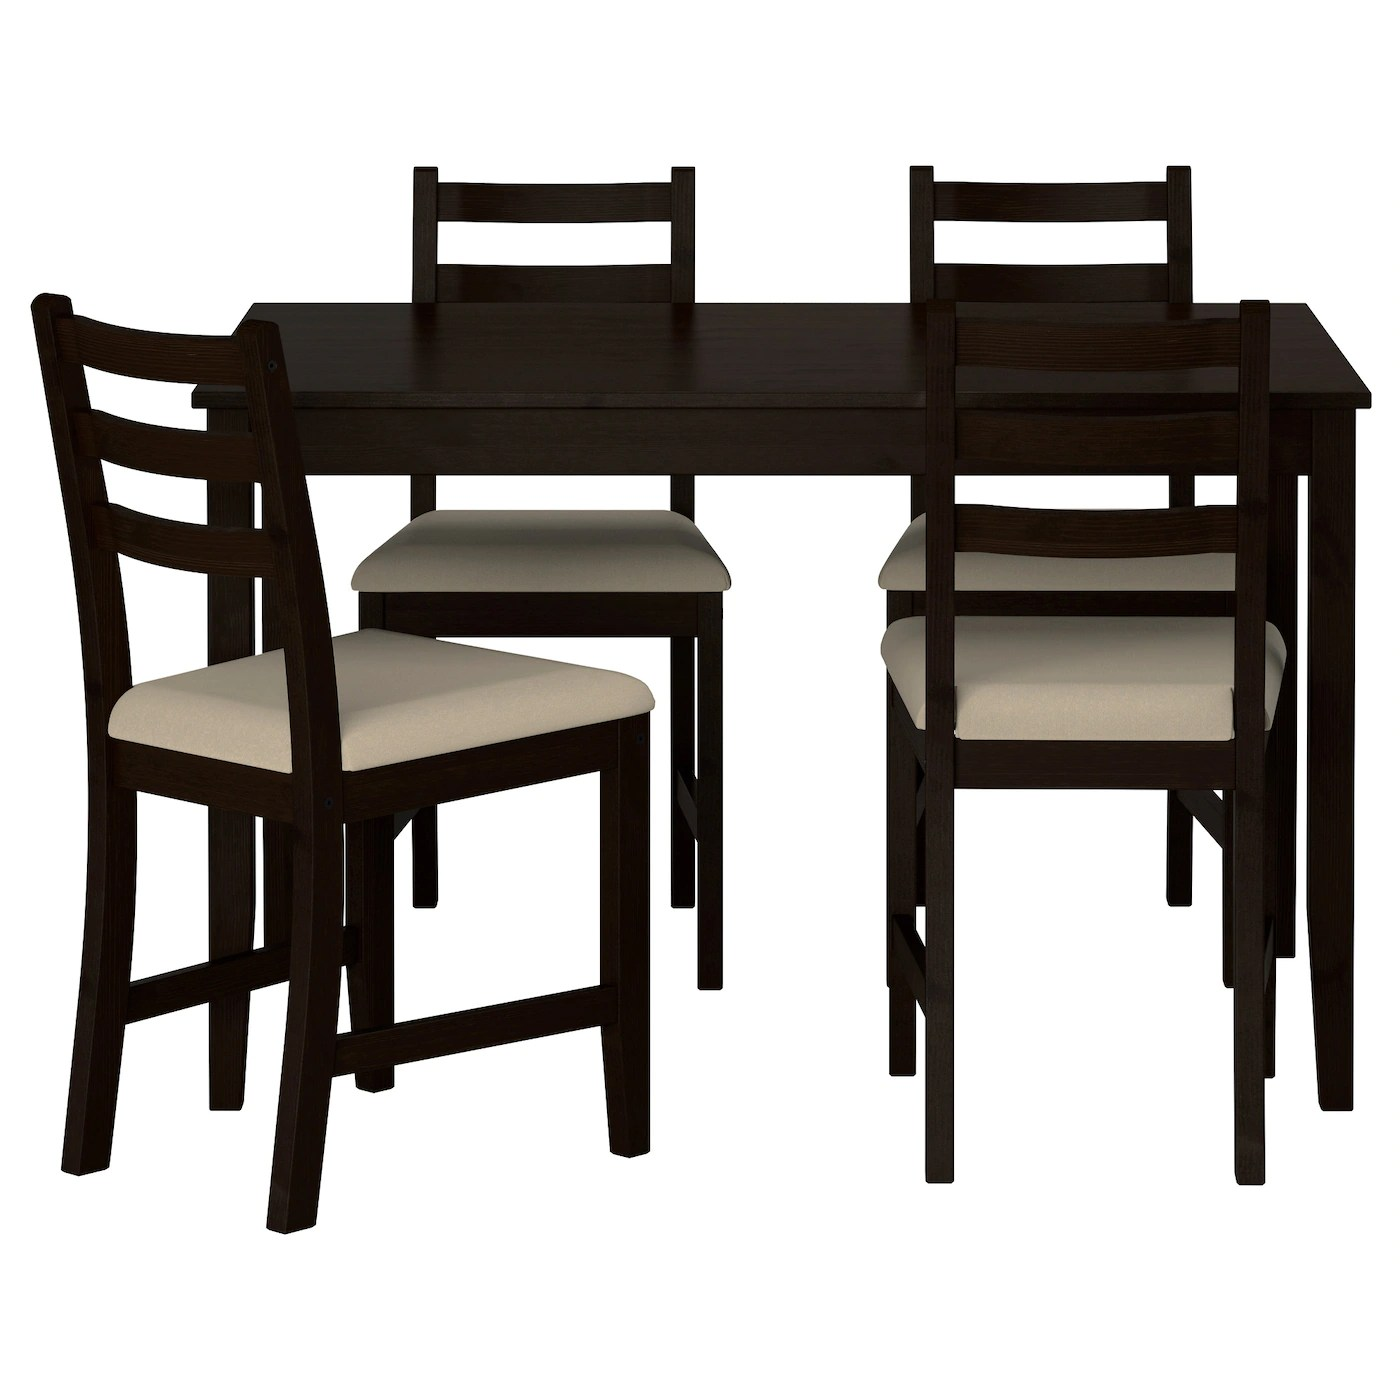 Set Table Ikea Lerhamn Table And 4 Chairs Black Brown Ramna Beige 118 X